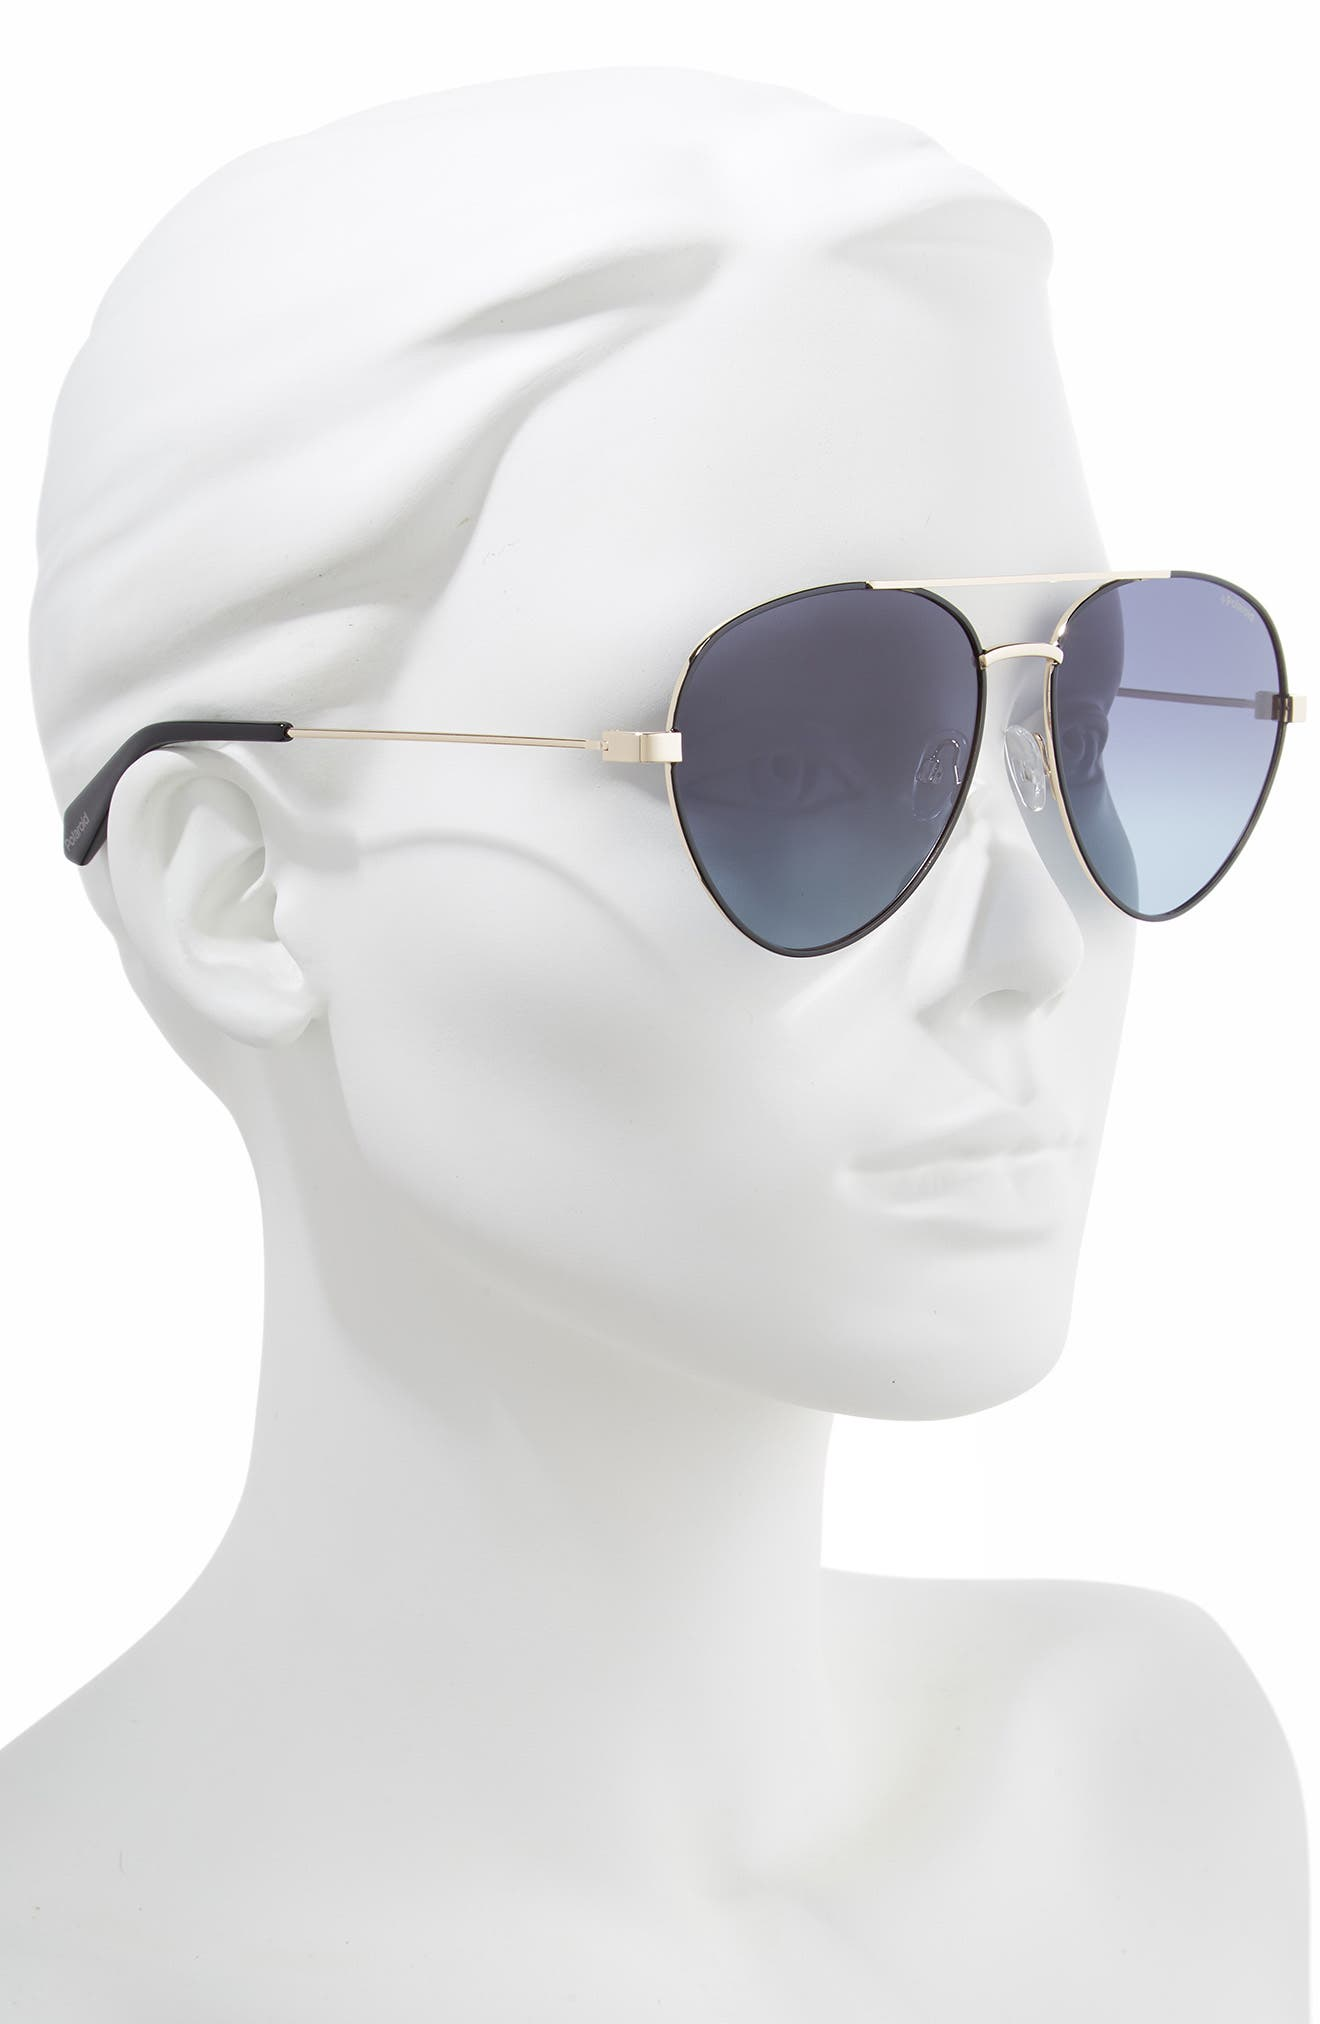 POLAROID EYEWEAR,                             Polaroid 59mm Polarized Aviator Sunglasses,                             Alternate thumbnail 2, color,                             BLACK